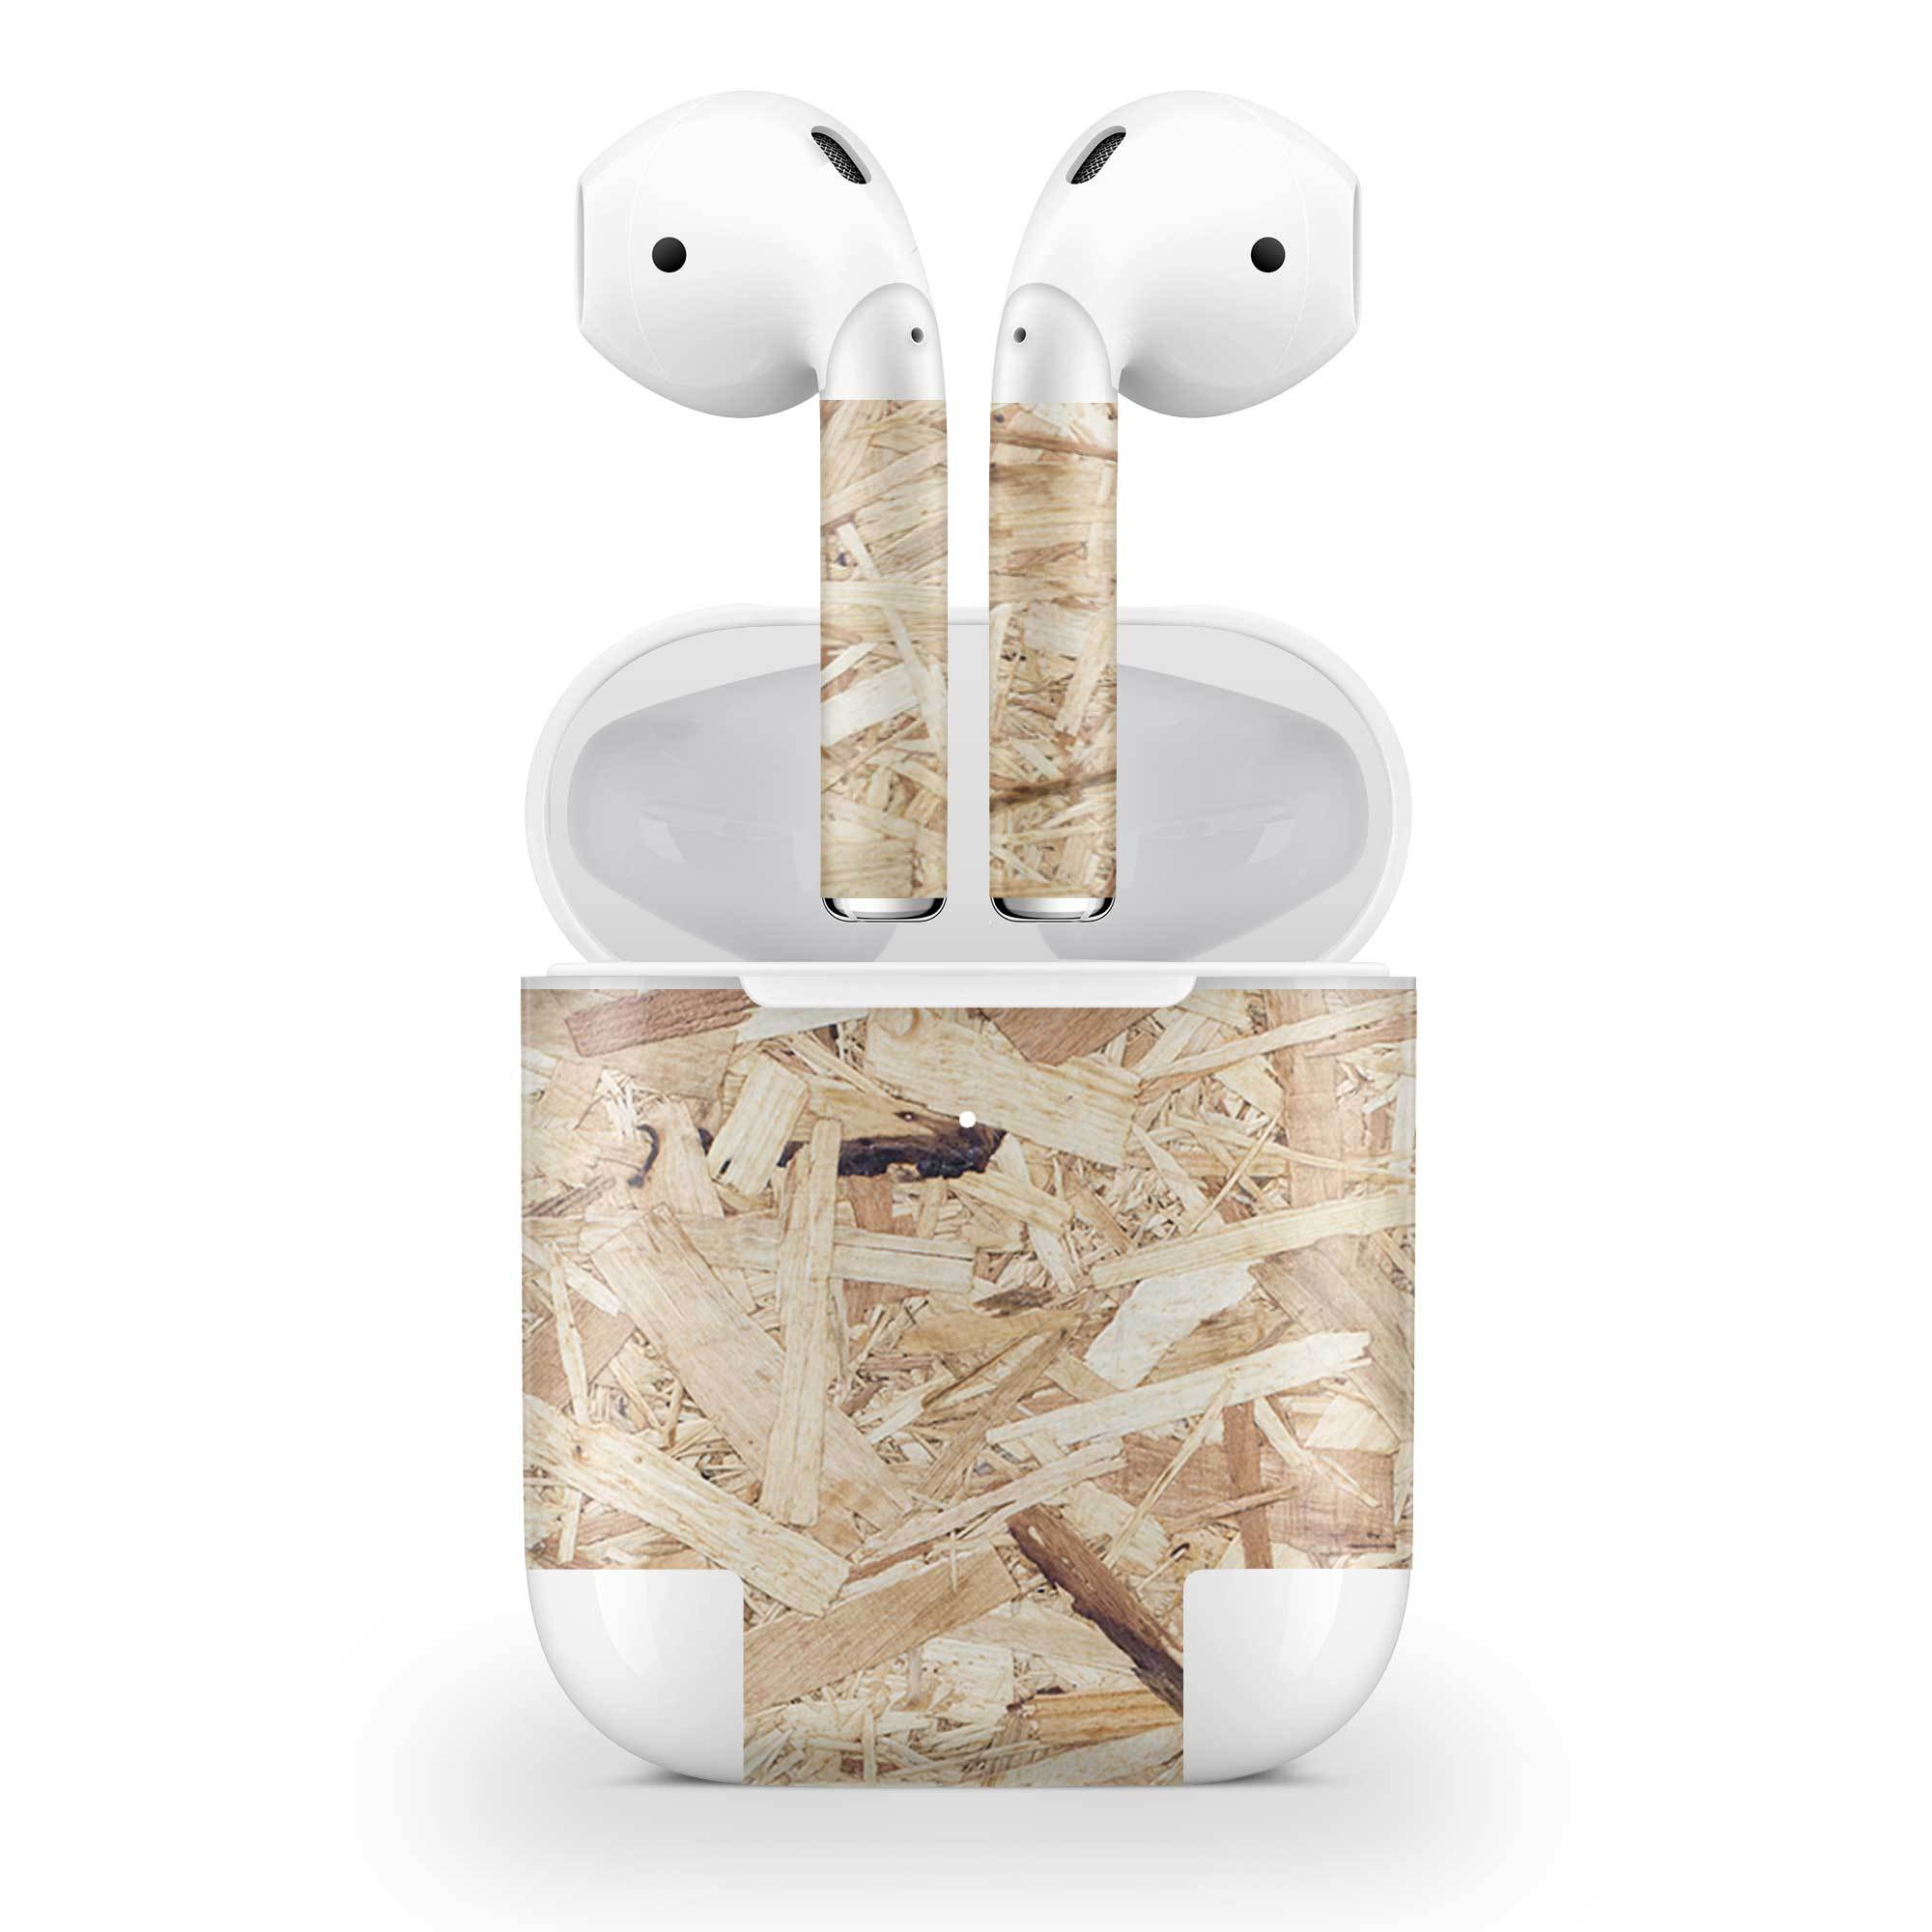 Plywood Skin AirPods Wireless Charging Case